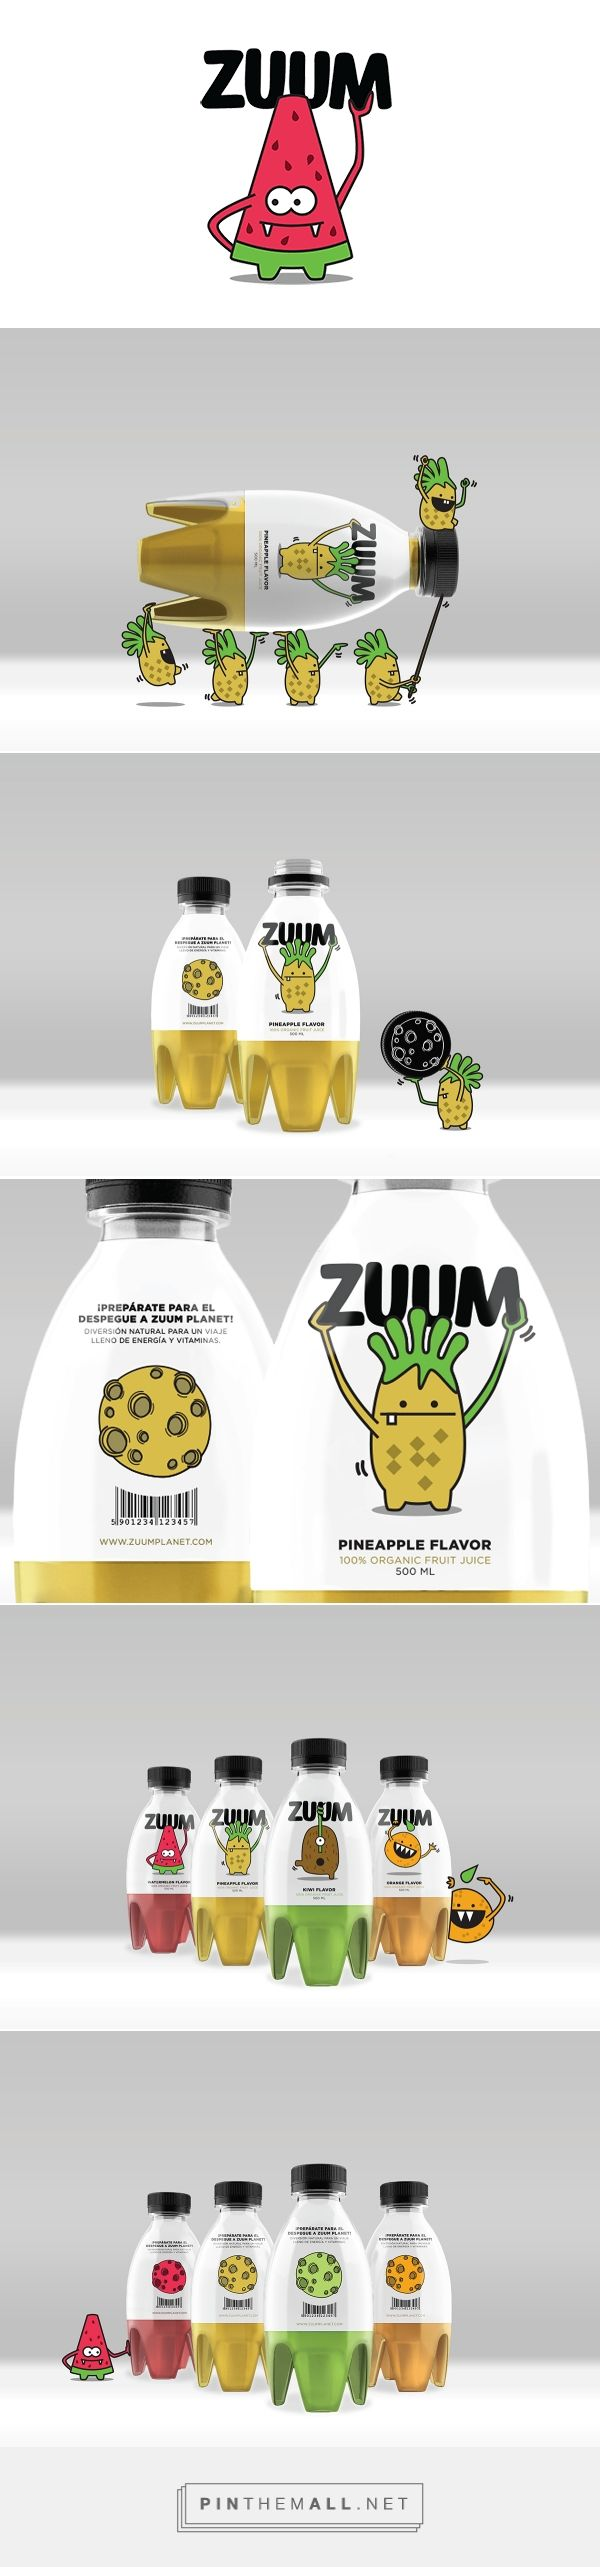 Organic juices · ZUUM on Behance curated by Packaging Diva PD. Your daily packaging smile : )